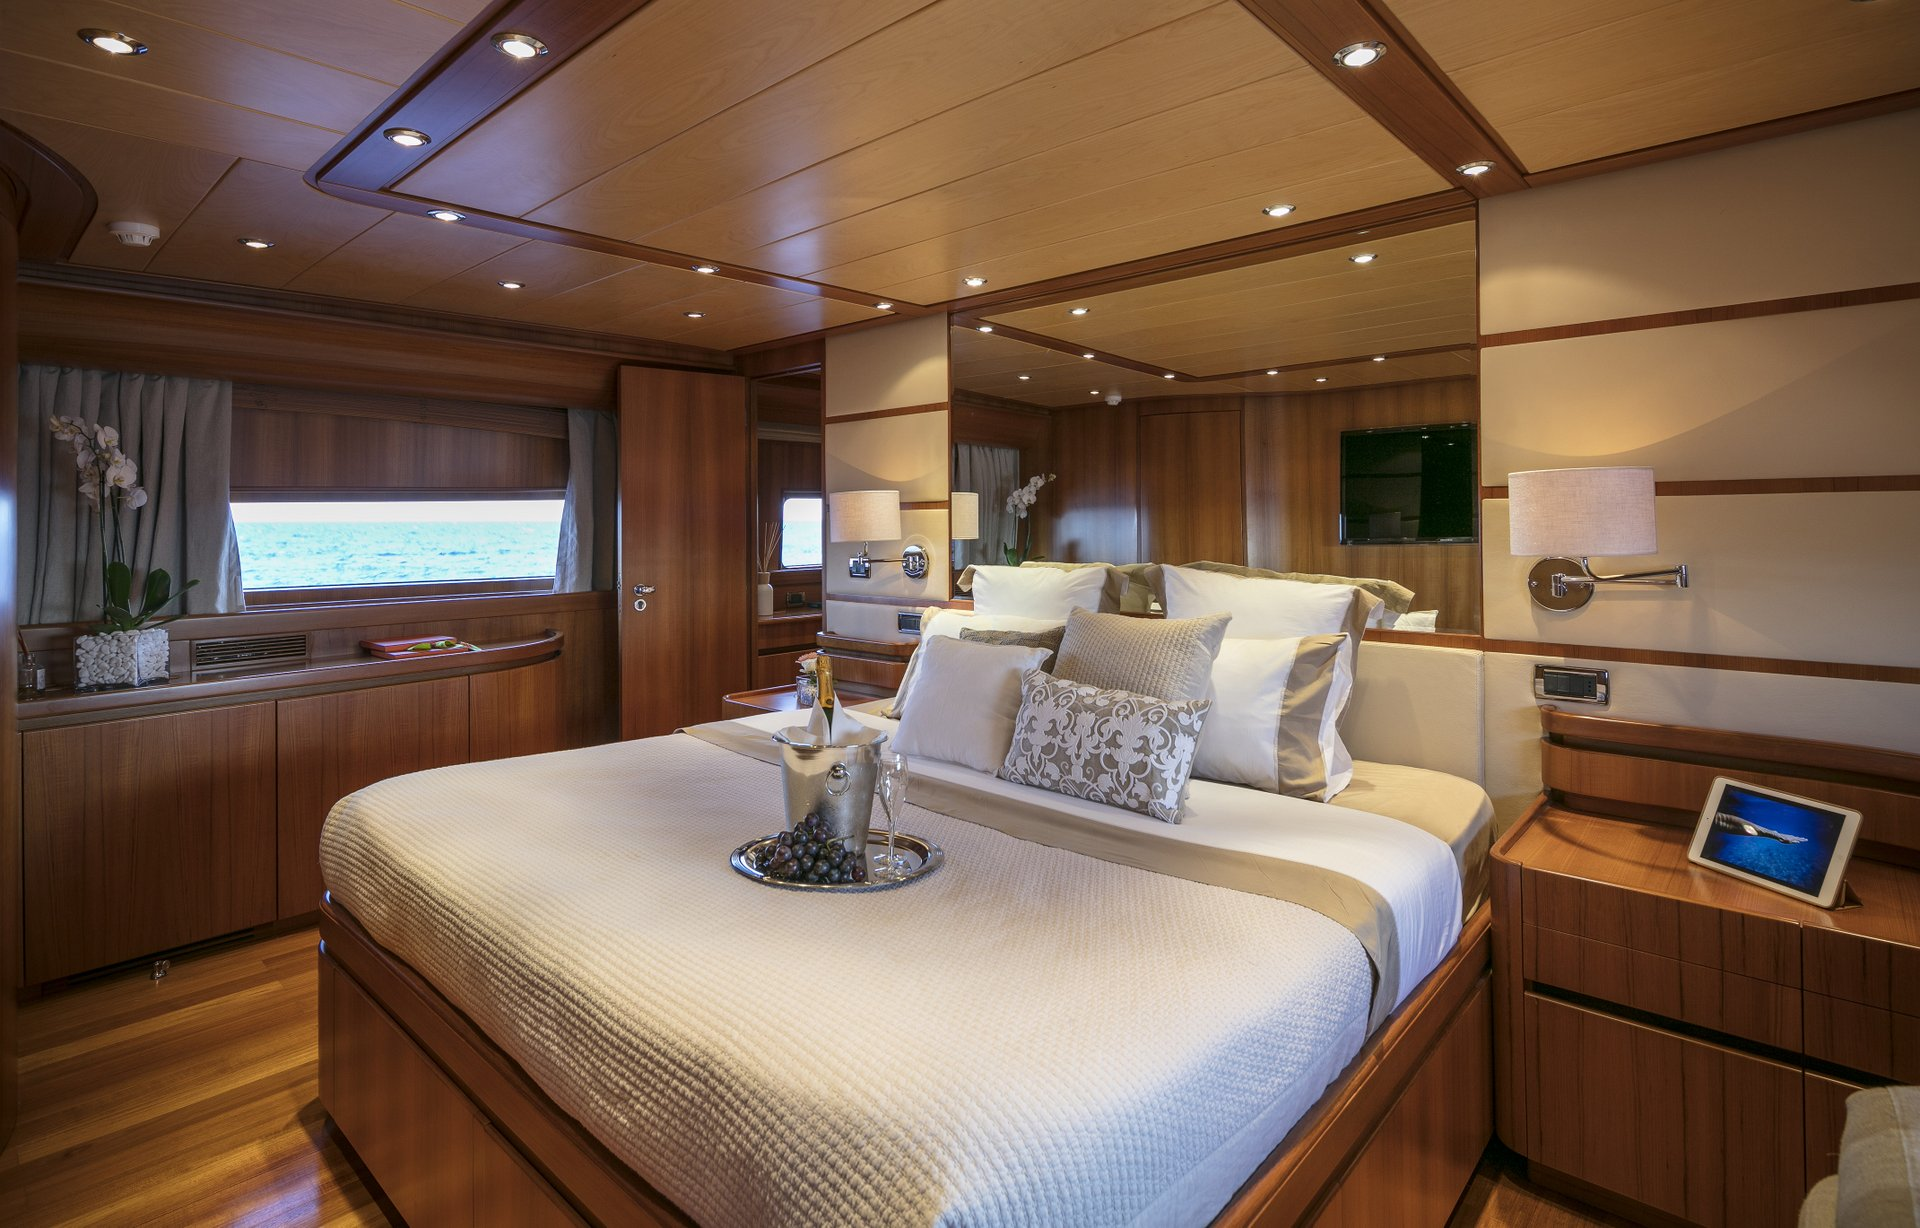 M/Y SUMMER DREAMS yacht for charter master bedroom